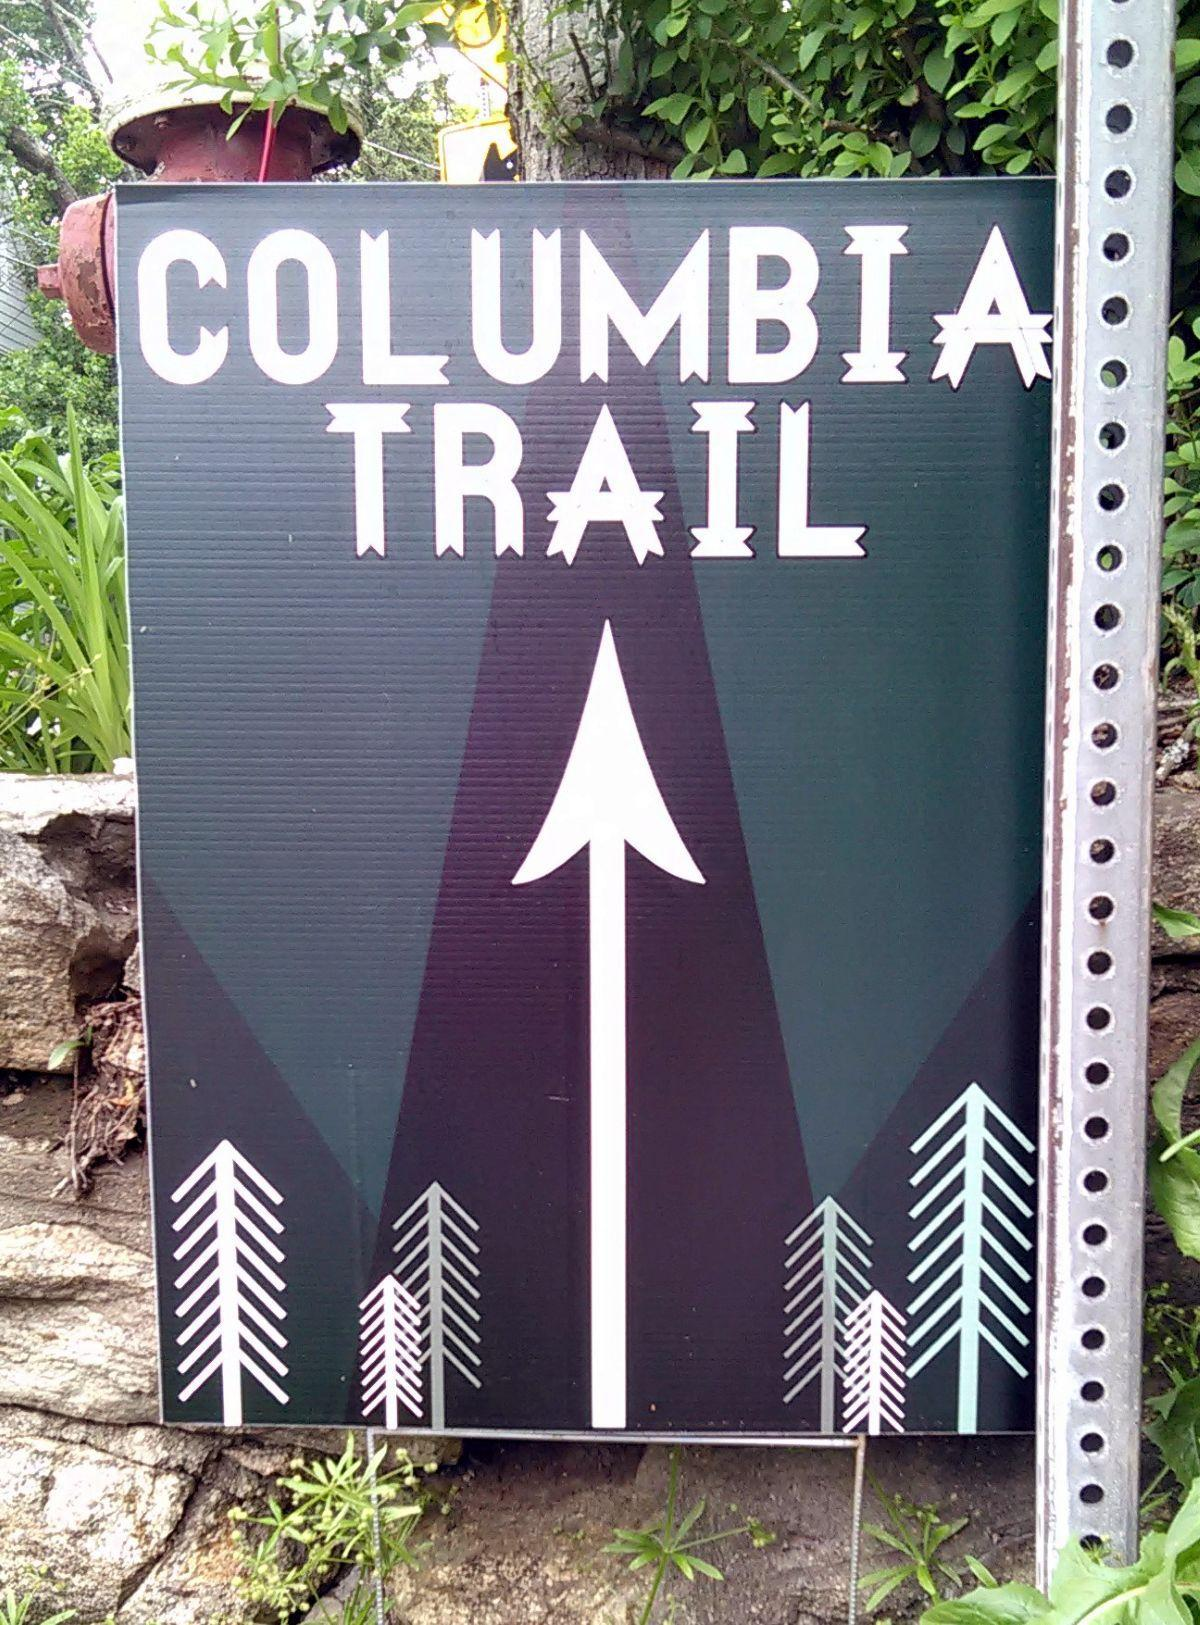 Columbia Trail signs have been posted by High Bridge merchants